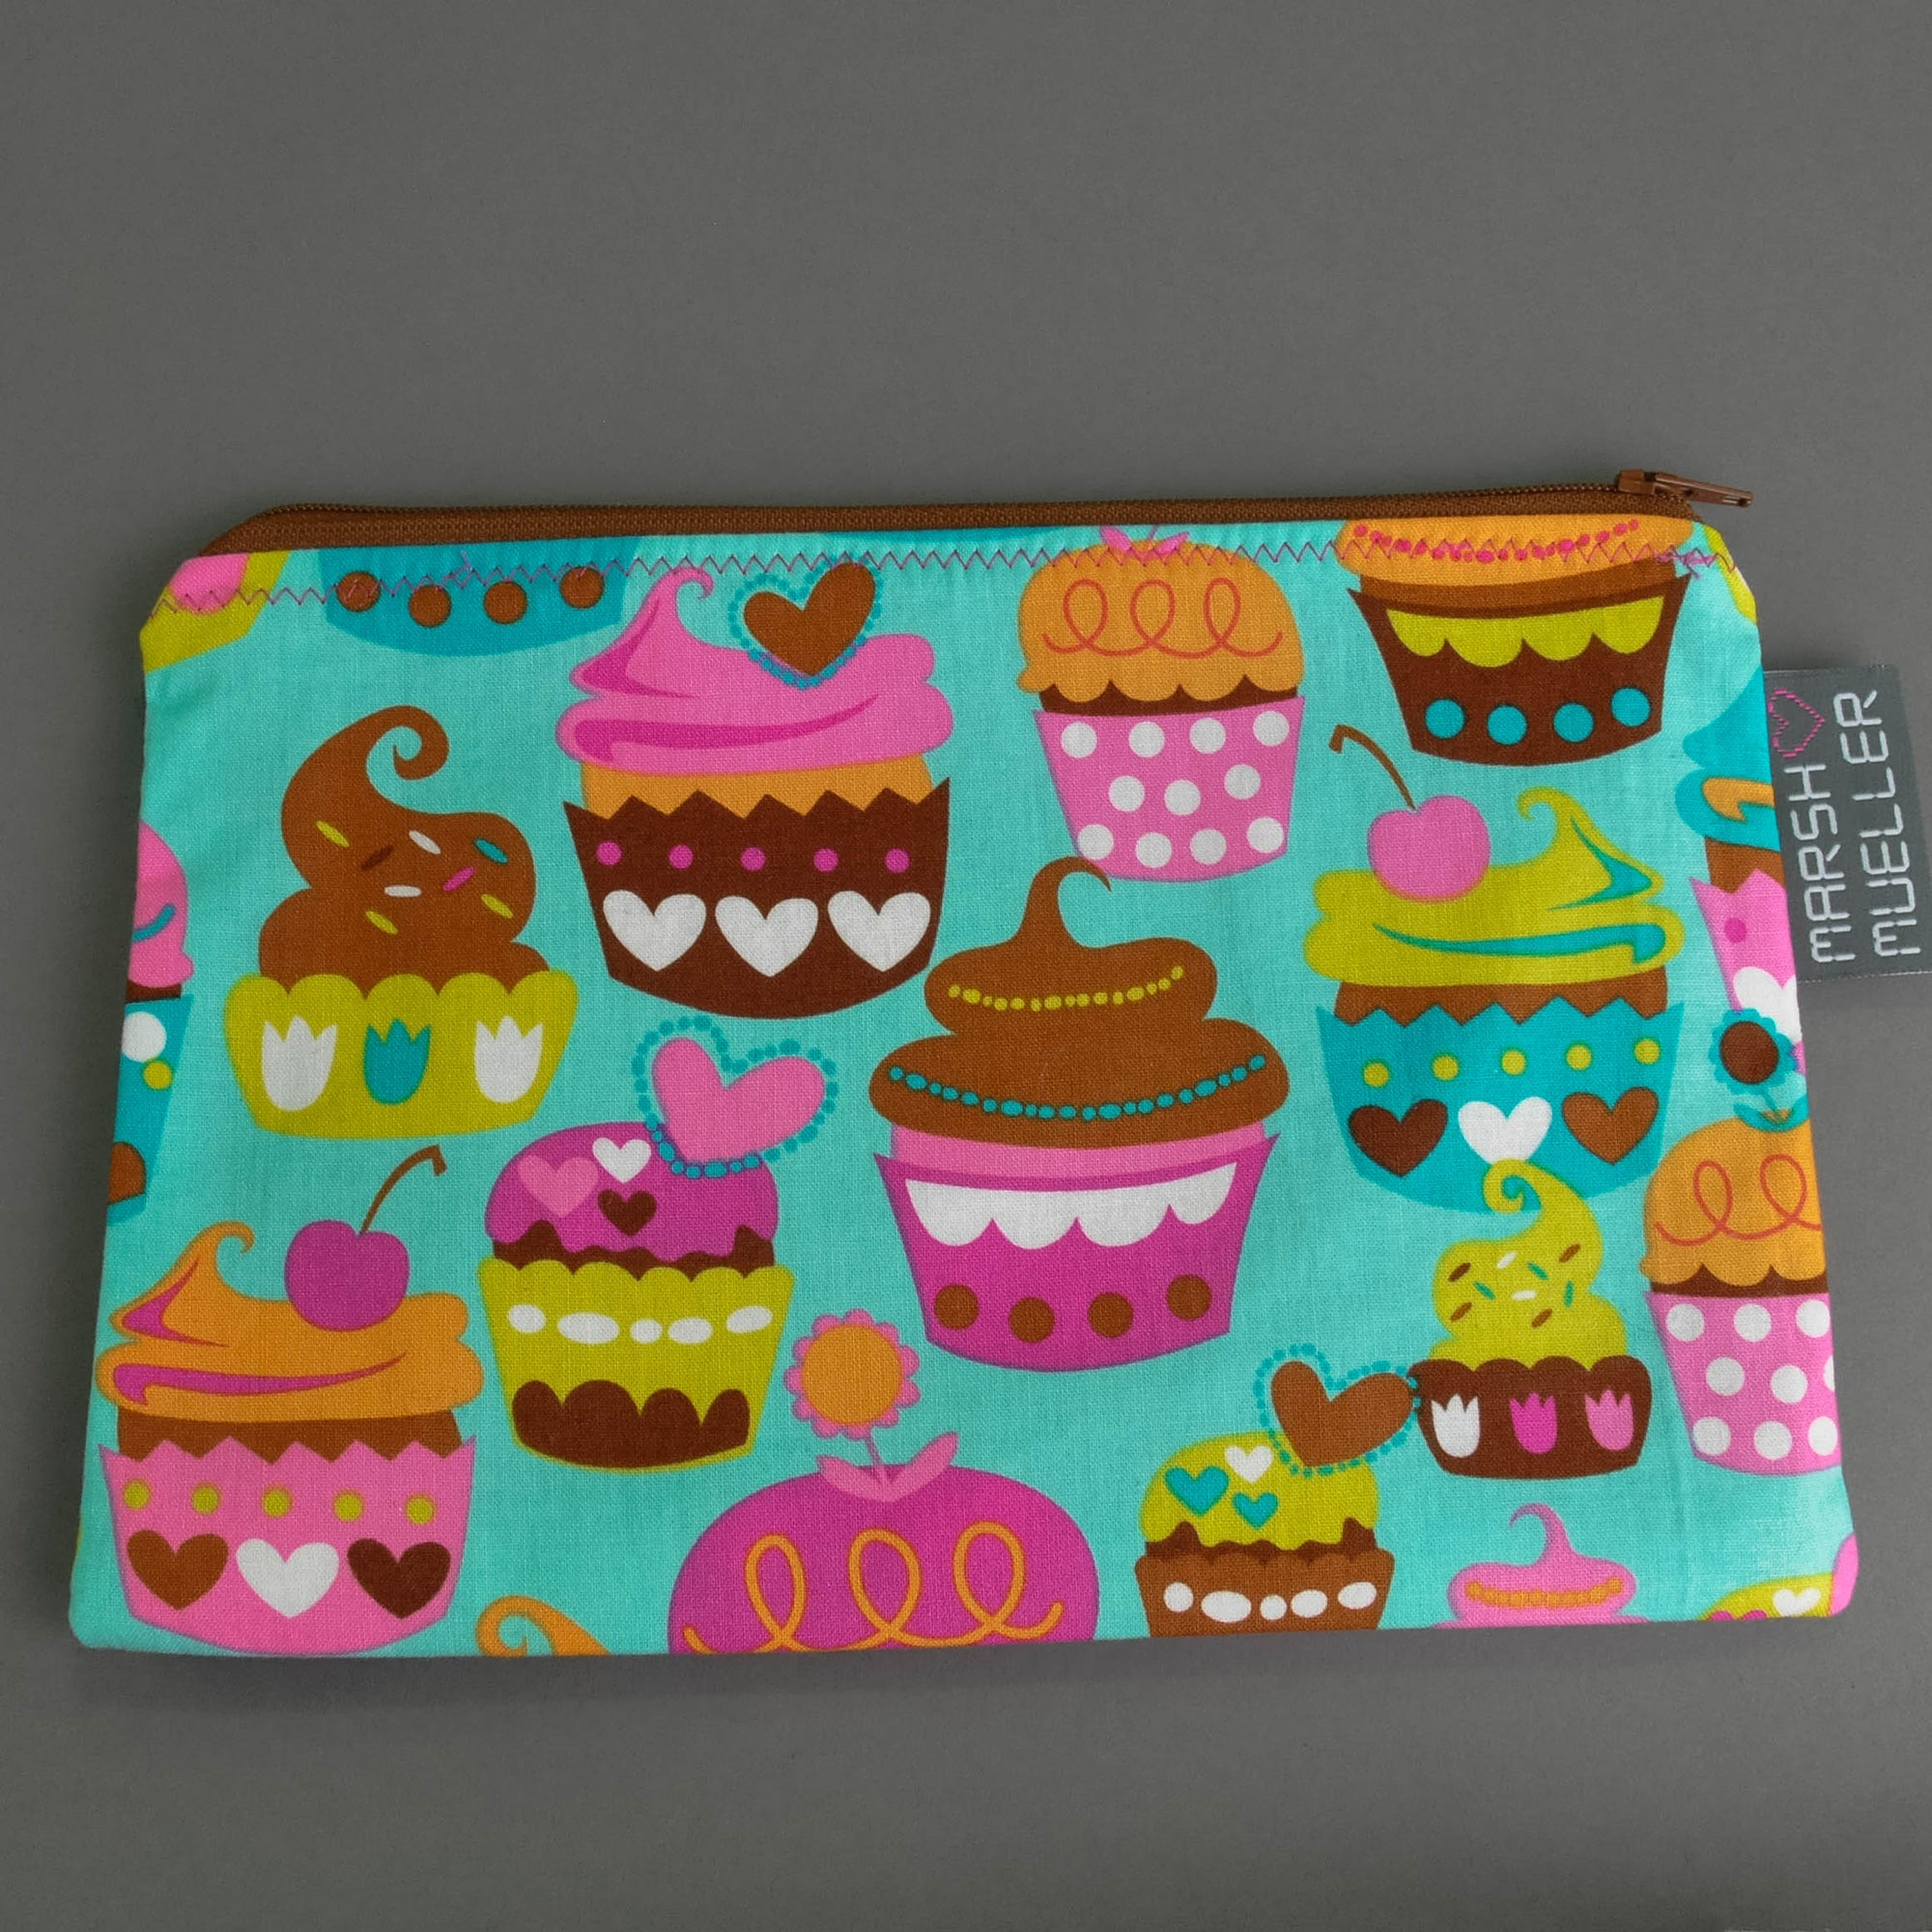 Sweet Cuppin' Cakes Zippy Bag